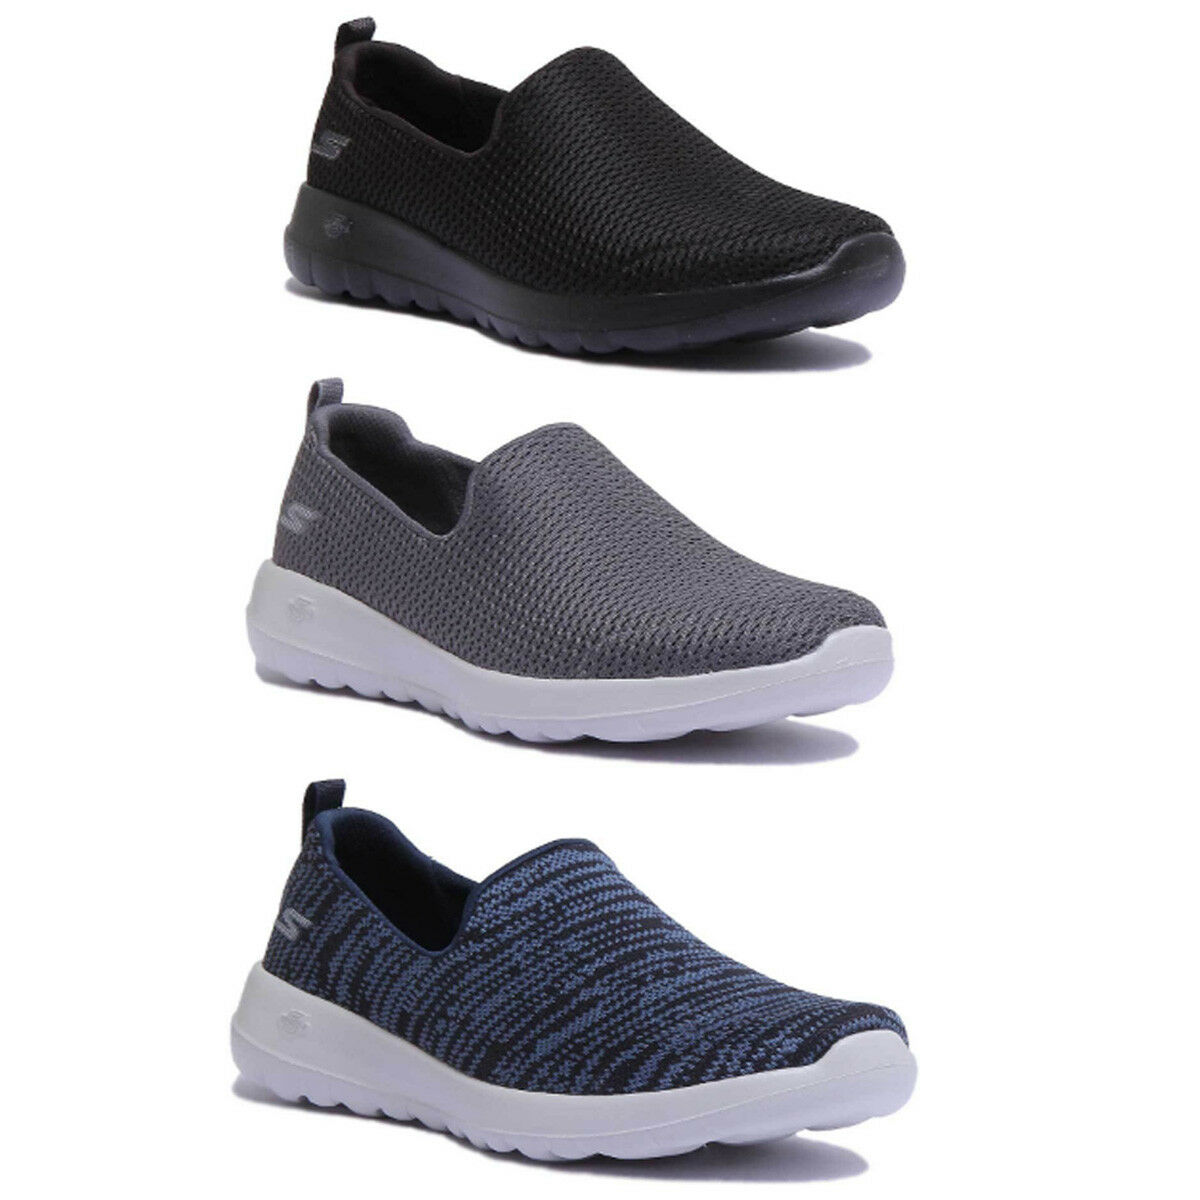 Skechers GoWalk Joy Damens Mesh Charcoal Slip On Trainers Größe UK 3 - 8